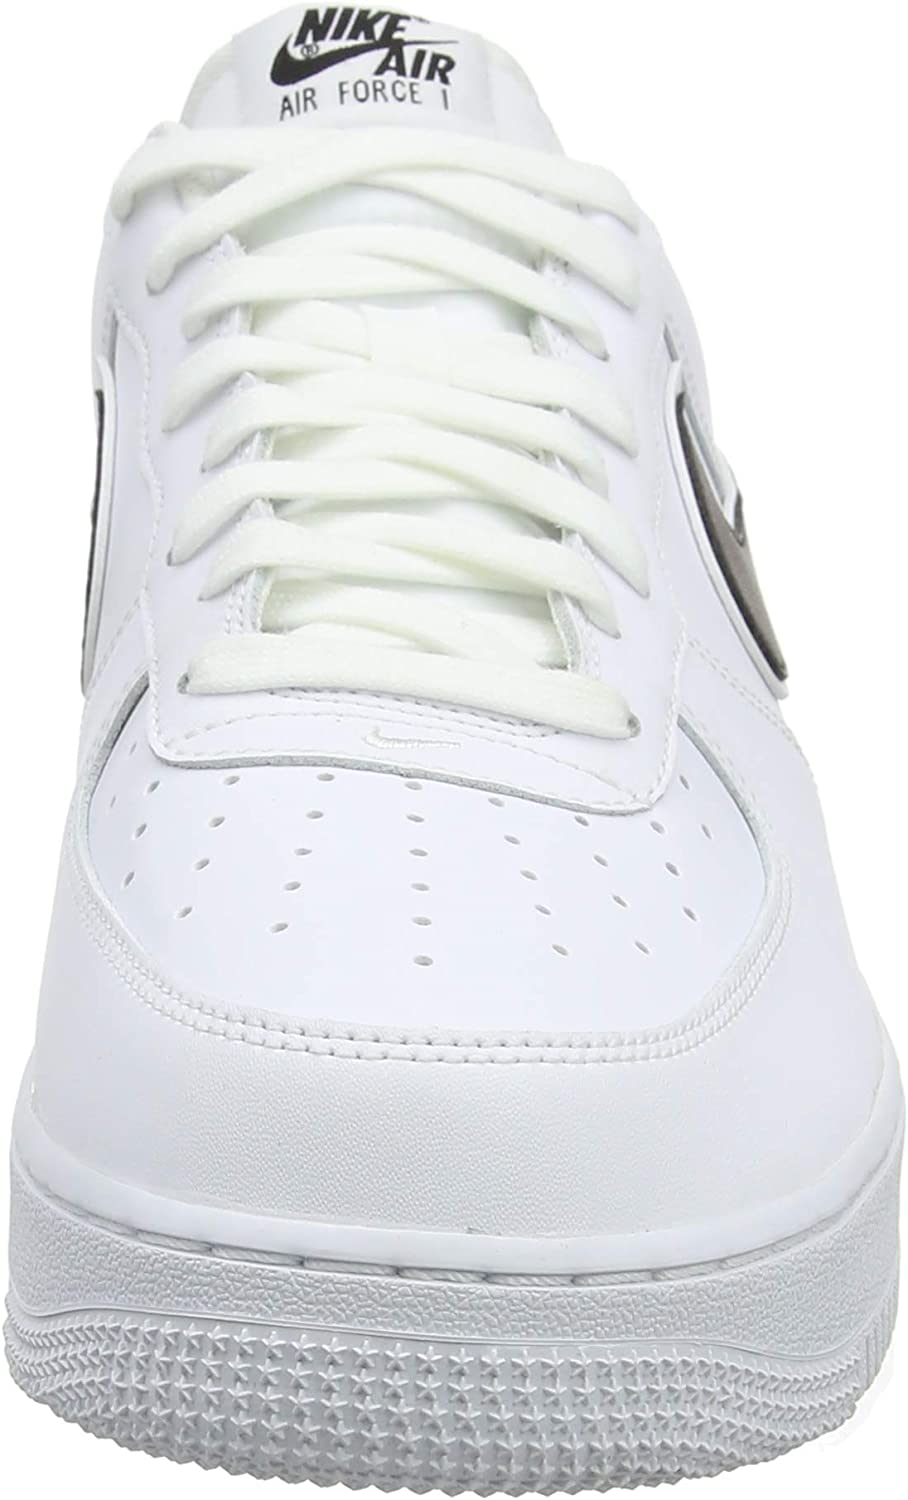 Scarpe da Basket Uomo Nike Air Force 1 07 3